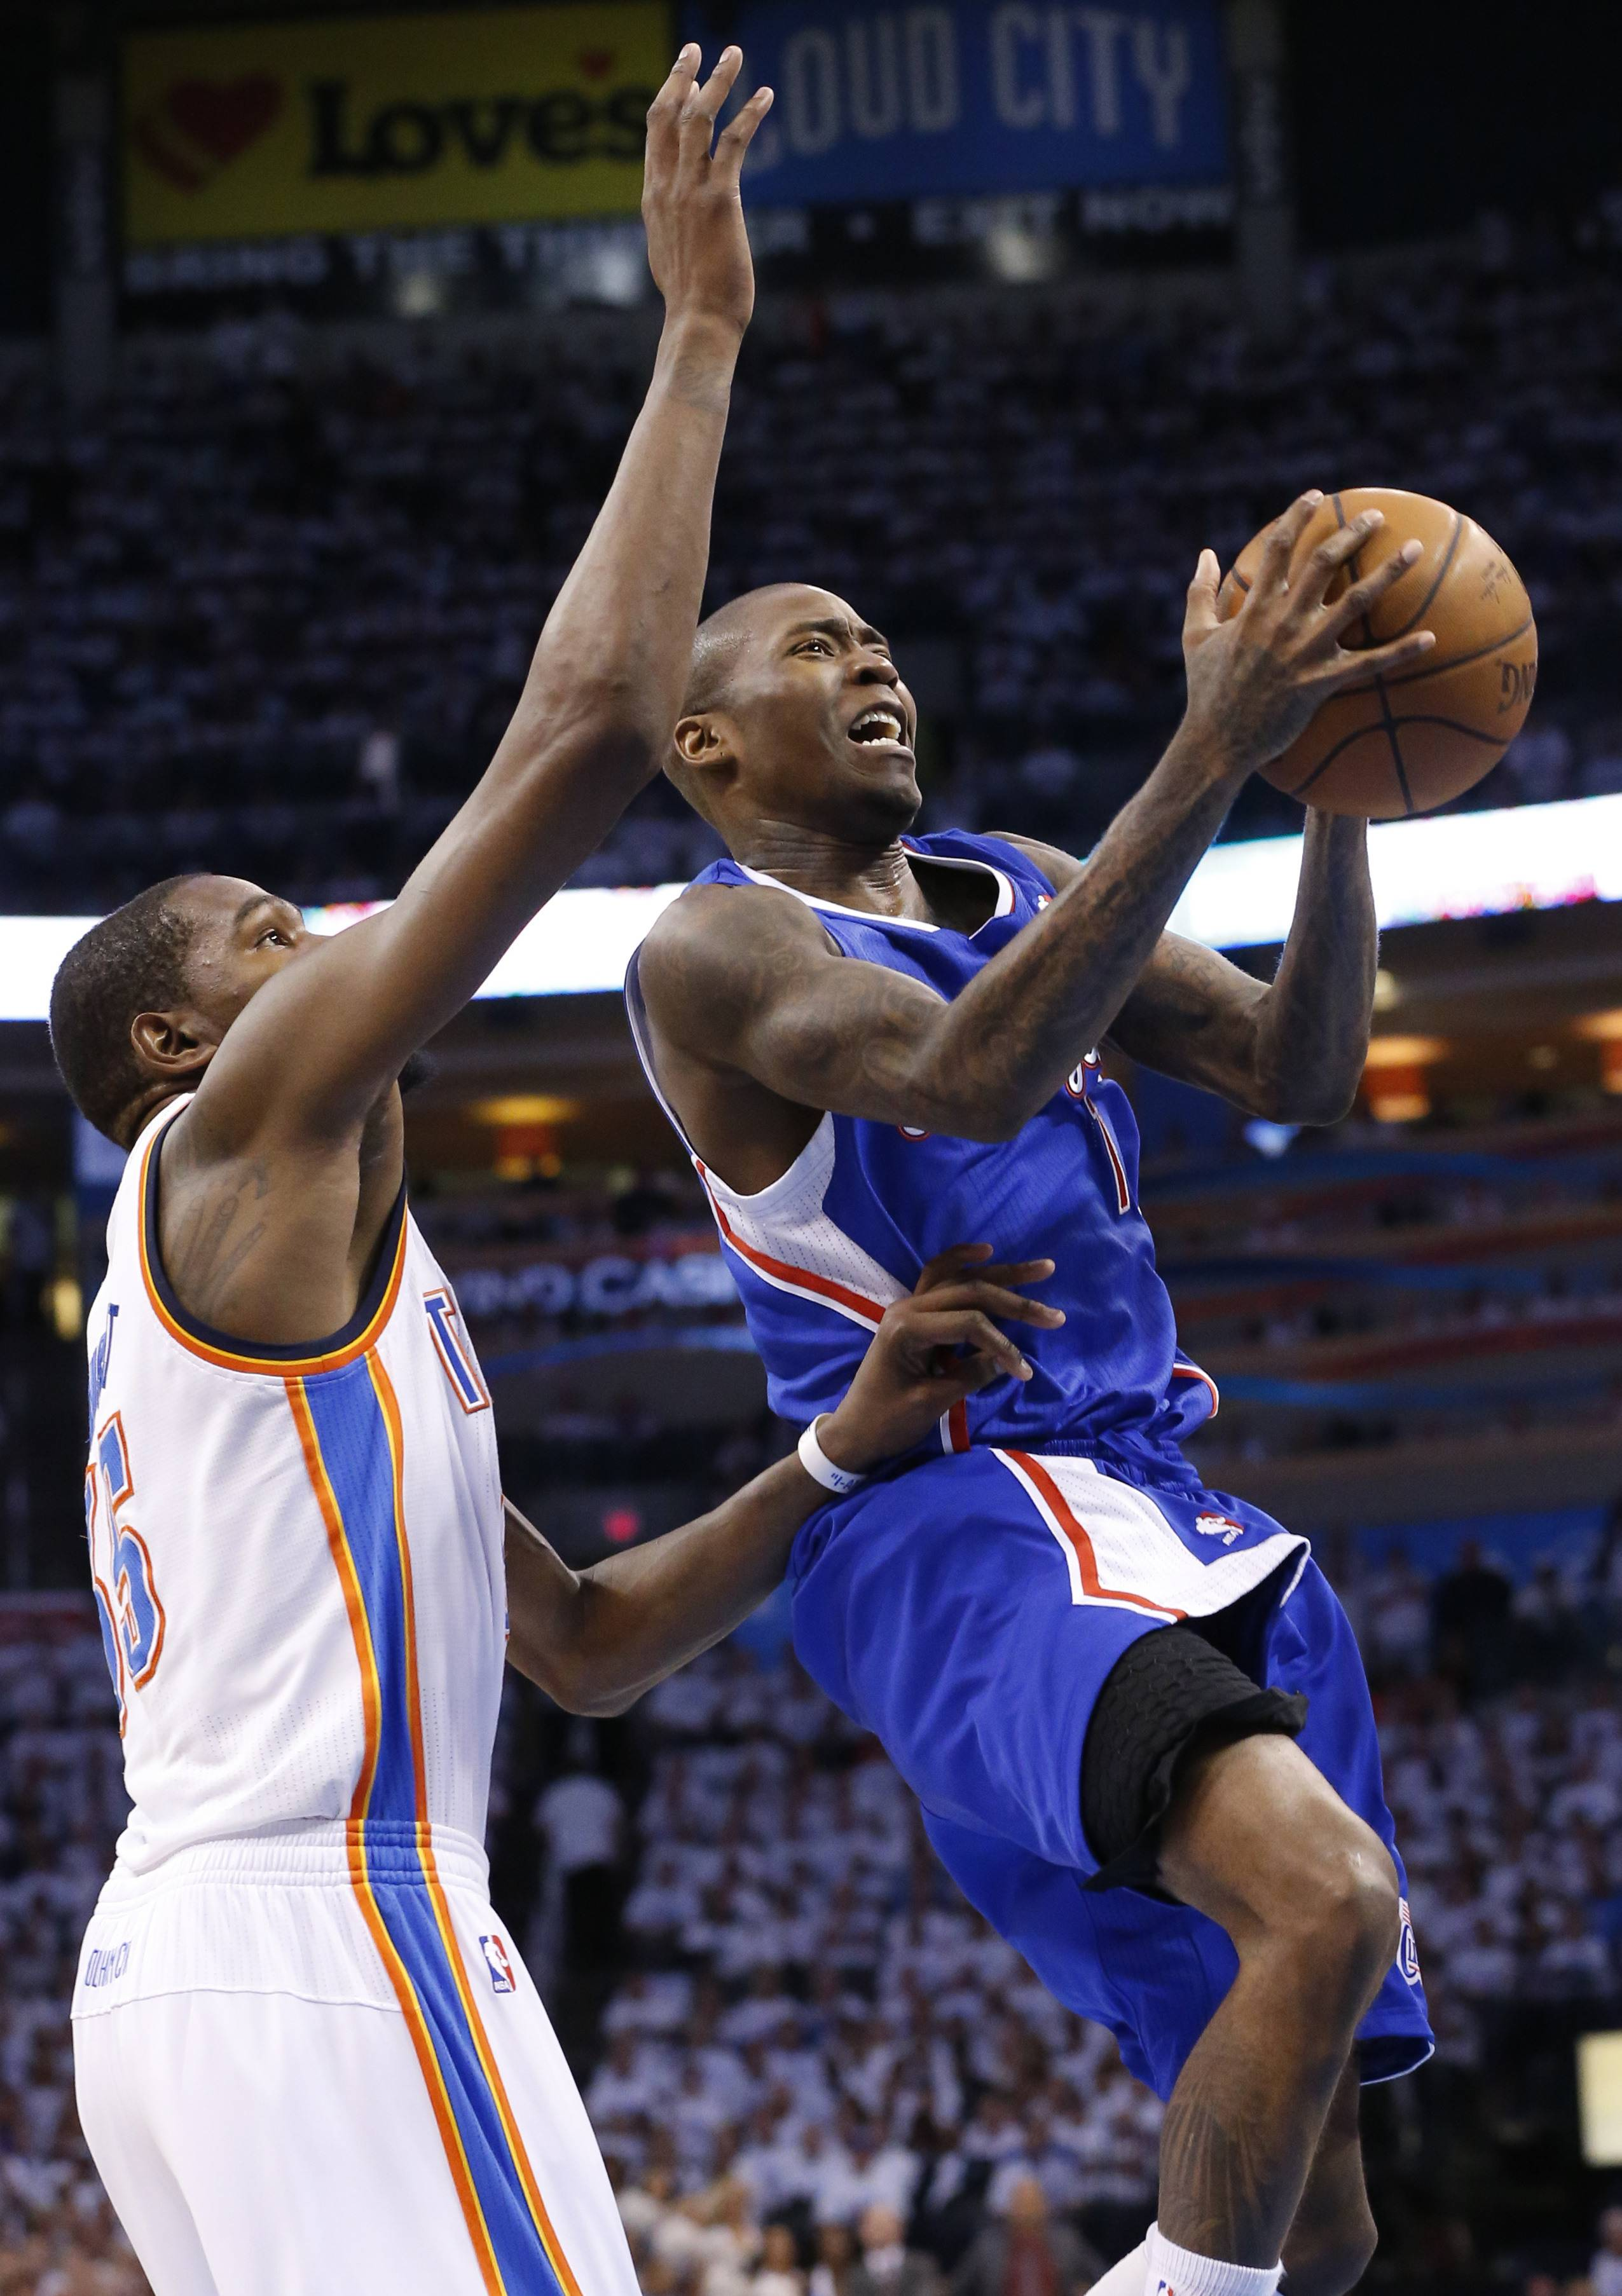 Los Angeles Clippers guard Jamal Crawford (11) shoots in front of Oklahoma City Thunder forward Kevin Durant (35) in the second quarter of Game 5 of the Western Conference semifinal NBA basketball playoff series in Oklahoma City, Tuesday, May 13, 2014. Oklahoma City won 105-104. (AP Photo)